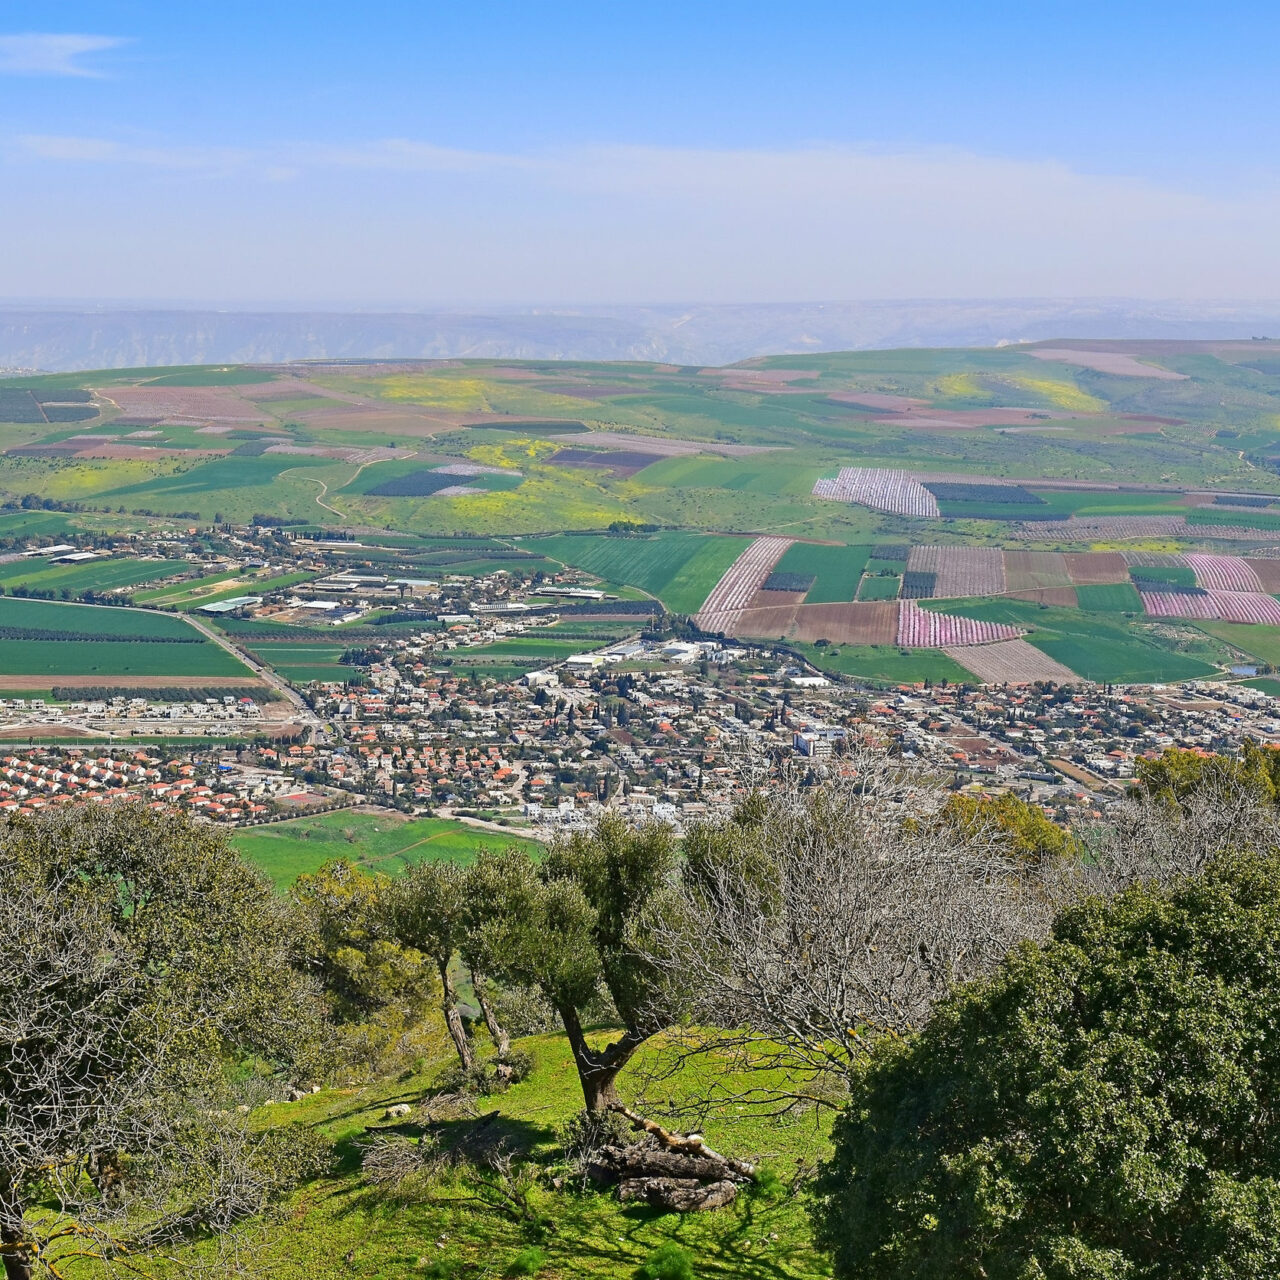 Jezreel Valley, Lower Galilee, Israel